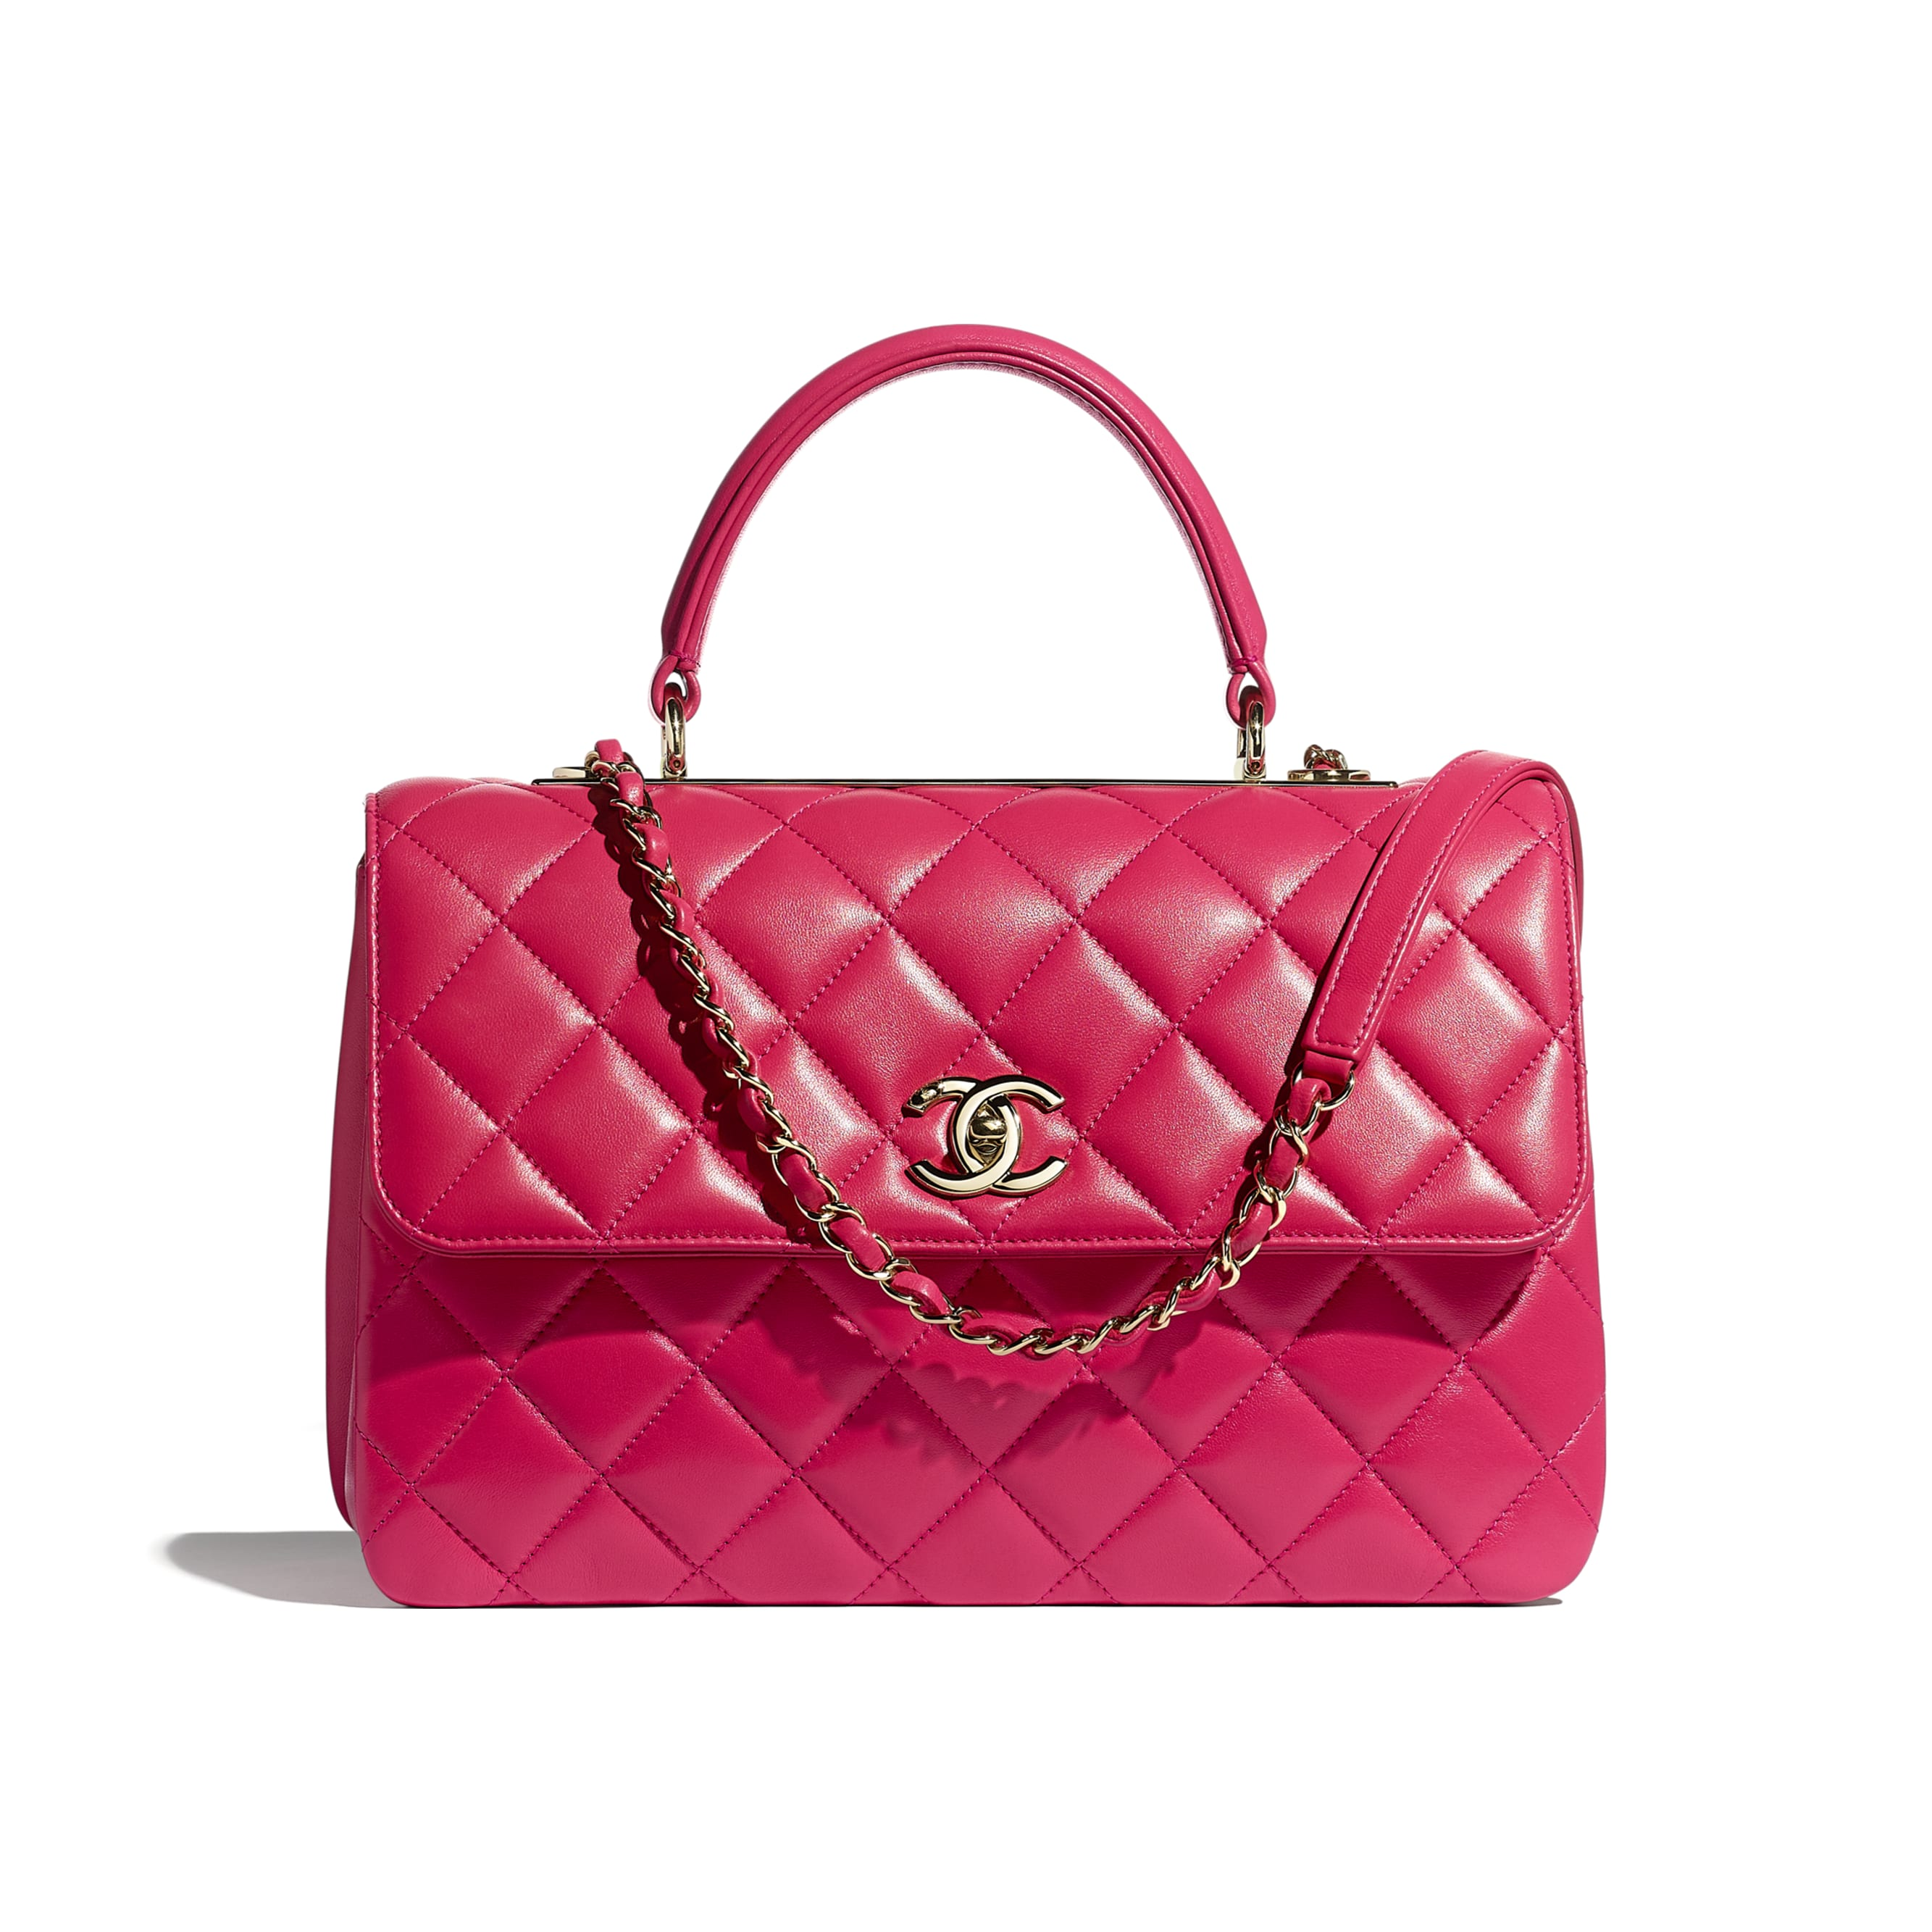 Flap Bag With Top Handle - Pink - Lambskin - CHANEL - Default view - see standard sized version